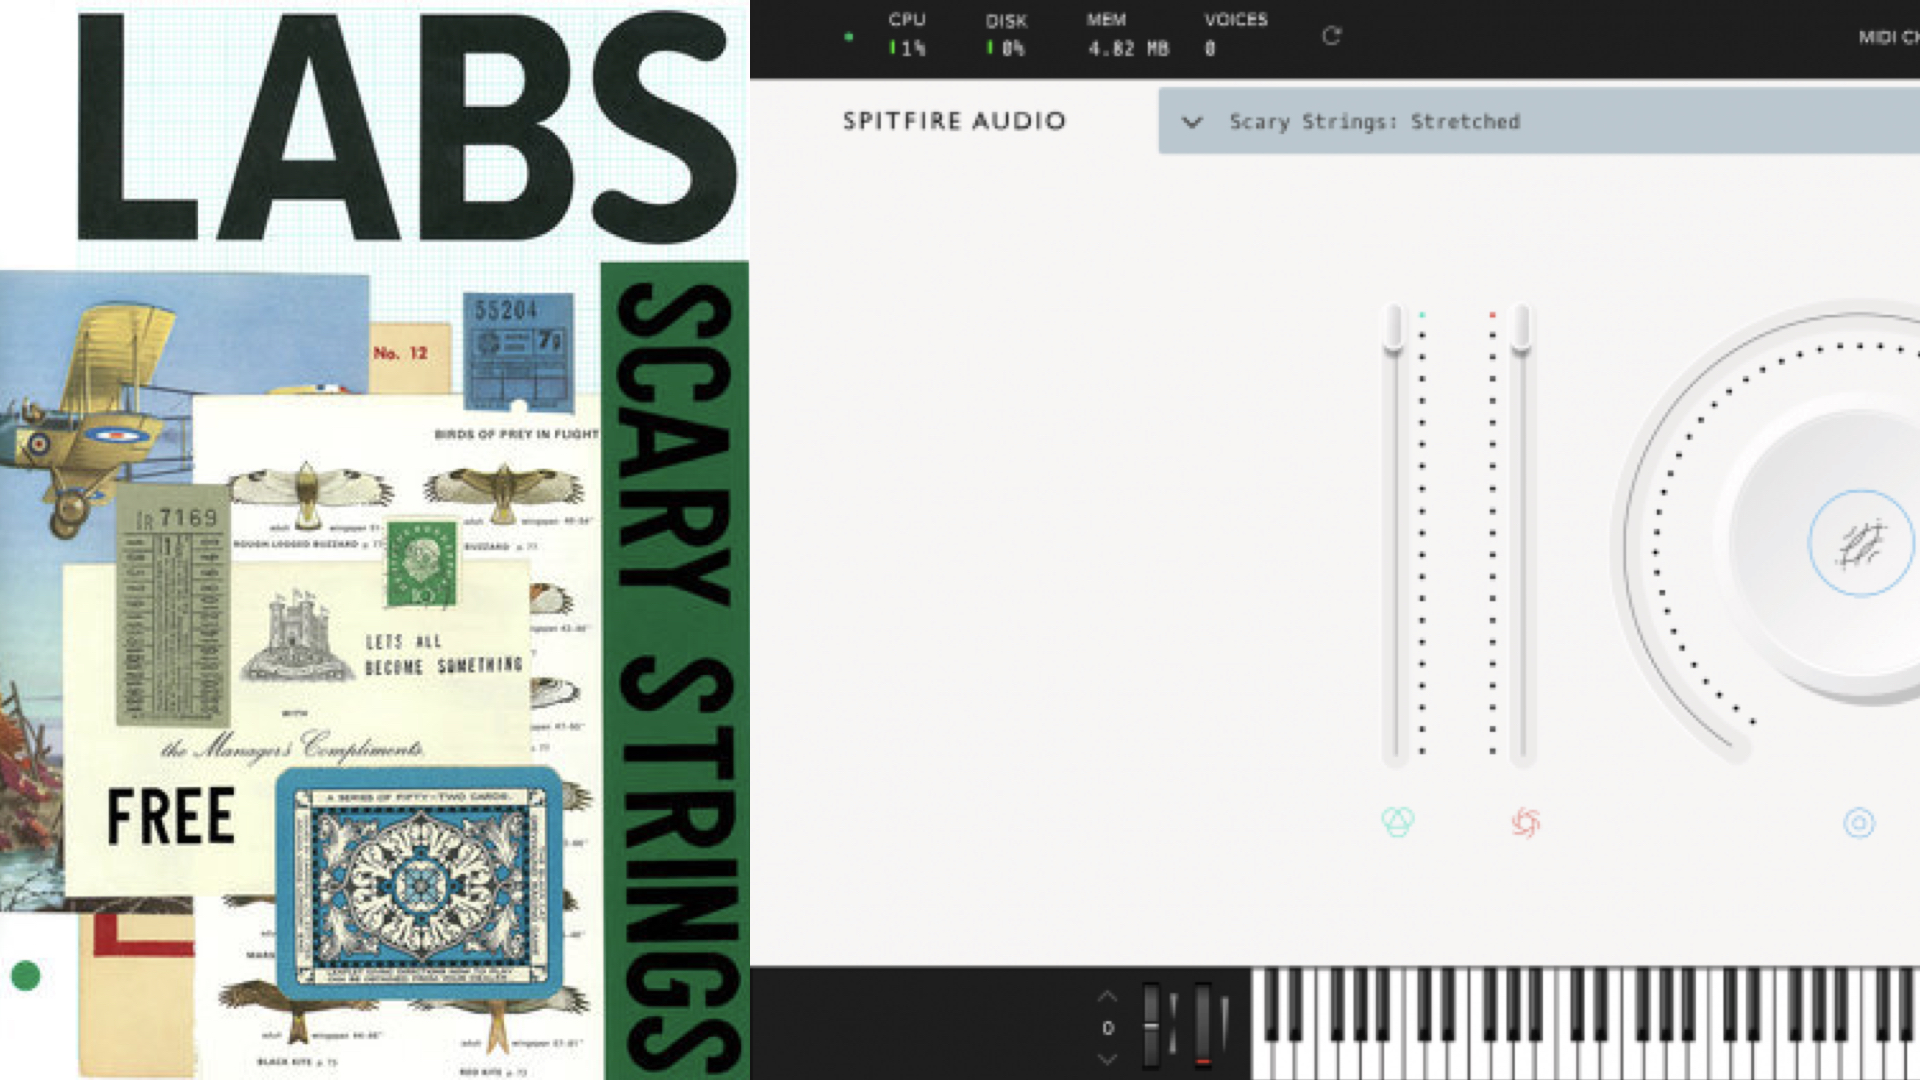 Spitfire Audio LABS Scary Strings Virtual Instrument Out Now